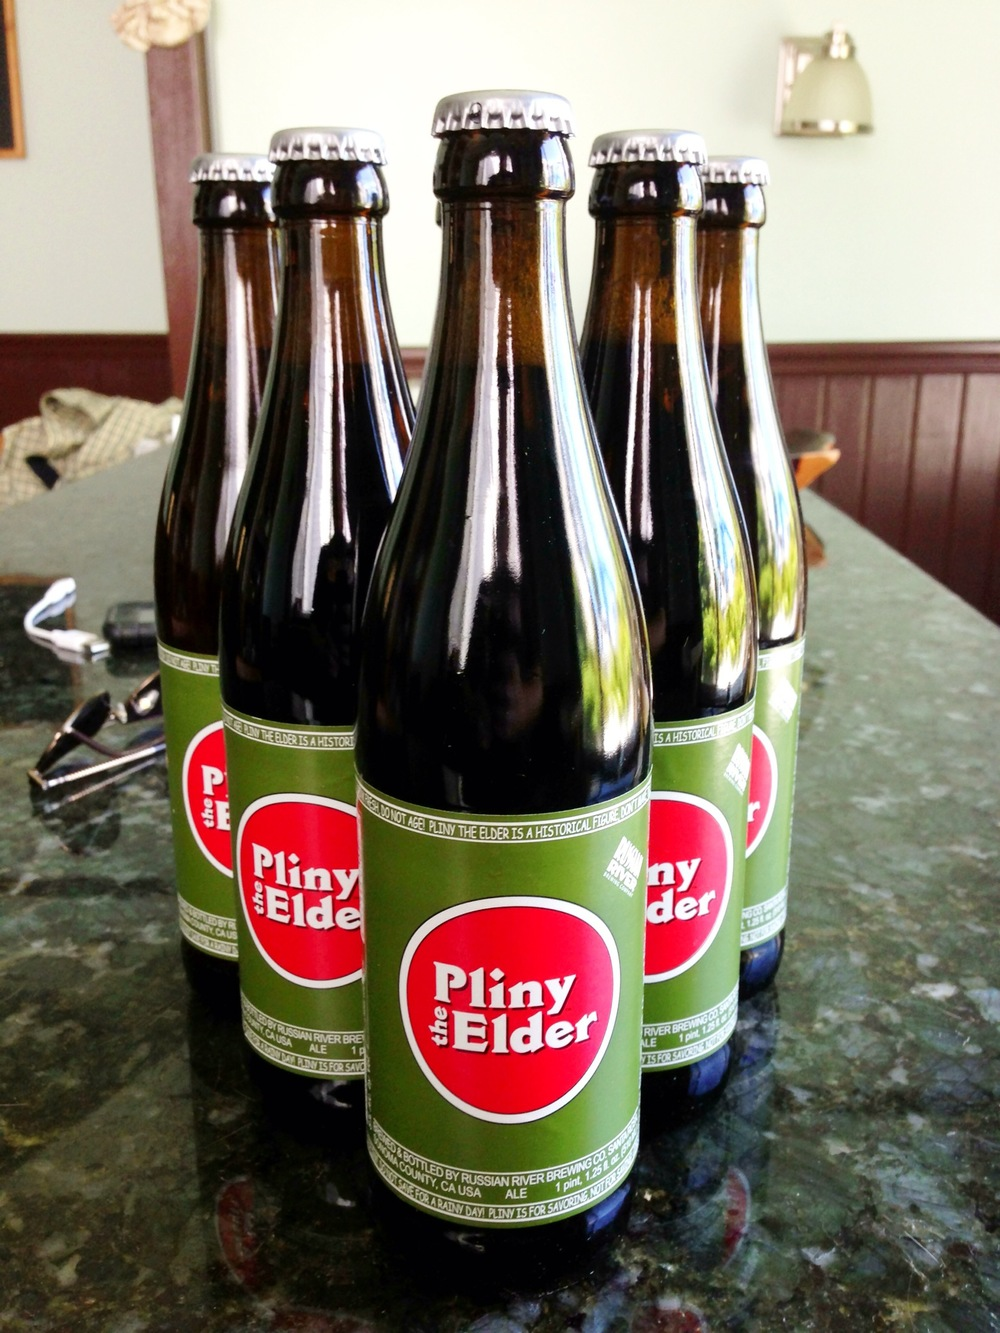 Brought six Pliny the Elders, bottled only a week before I left, to trade or gift with fellow beer geeks in Scotland & Belgium.